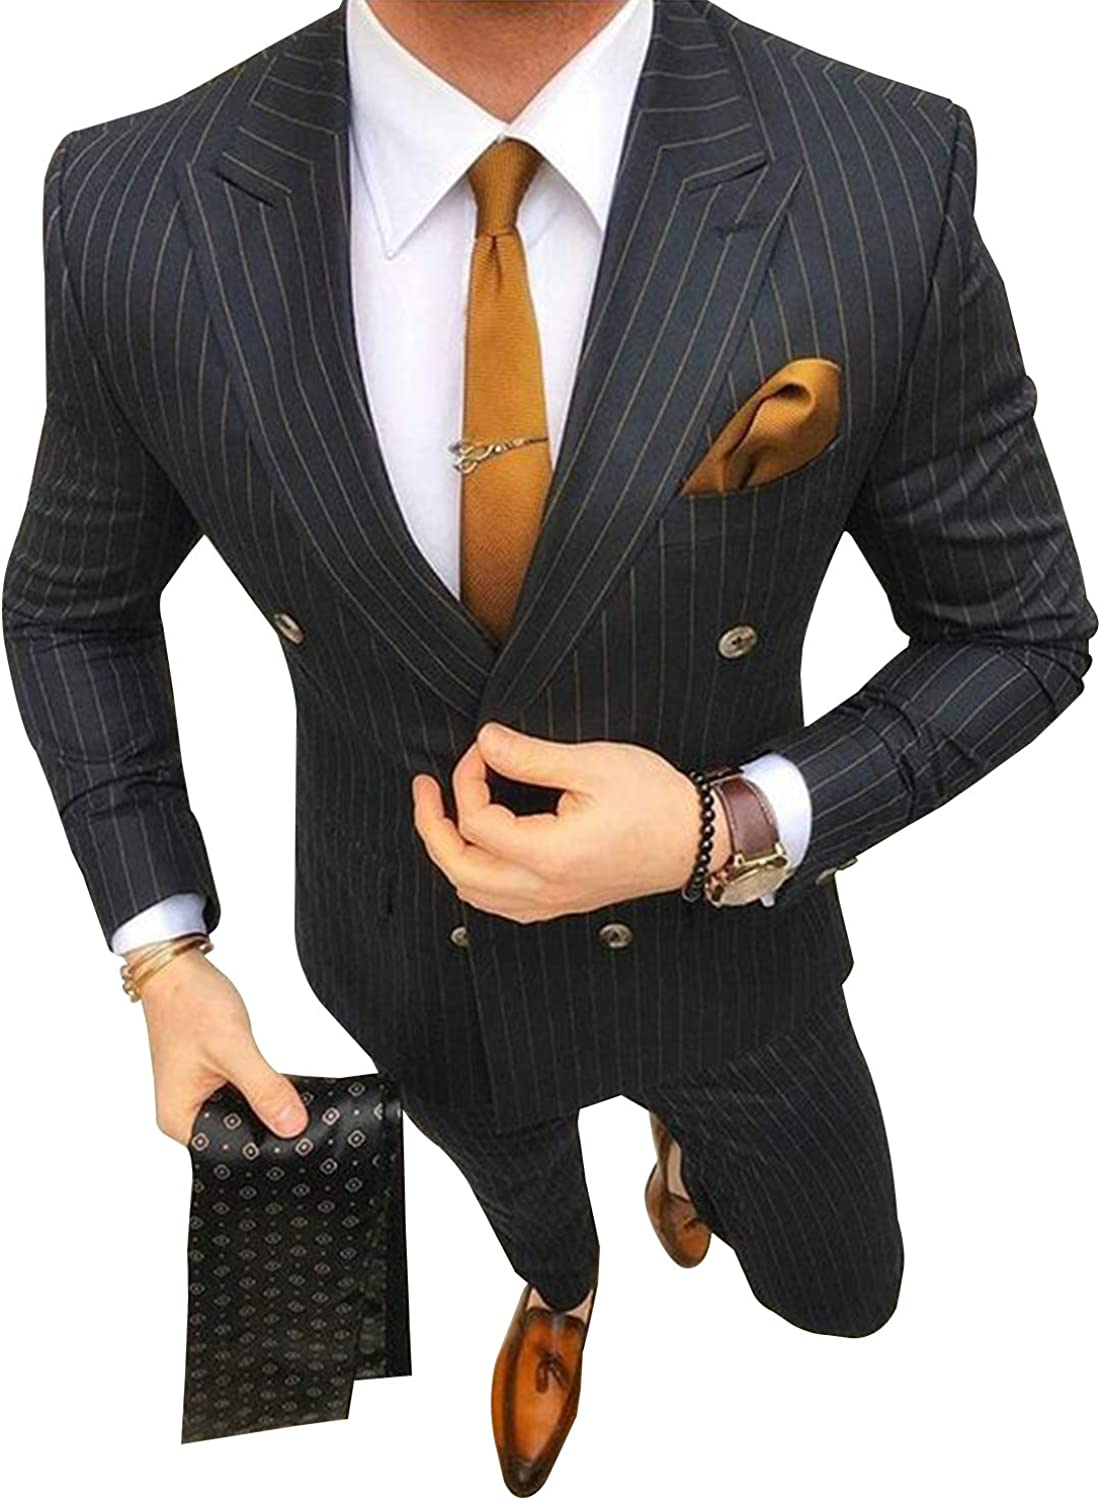 PG Mail order cheap Men's Pinstriped Max 48% OFF Classic-Fit Two-Piece Peaked New Suit Lapel